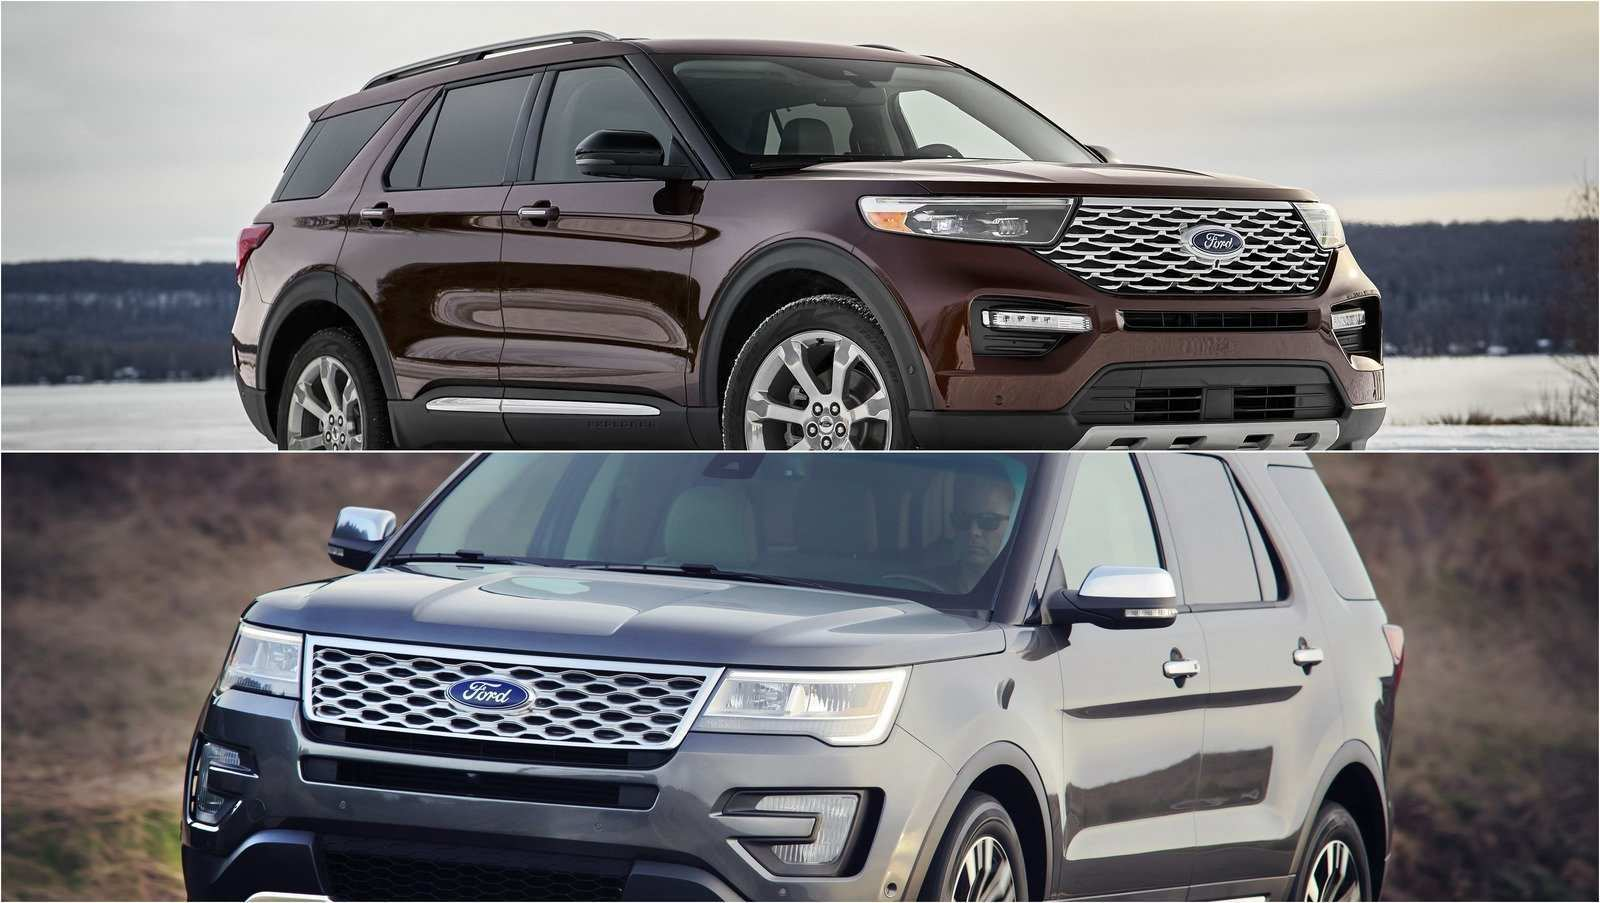 71 The Best 2019 The Ford Explorer Redesign